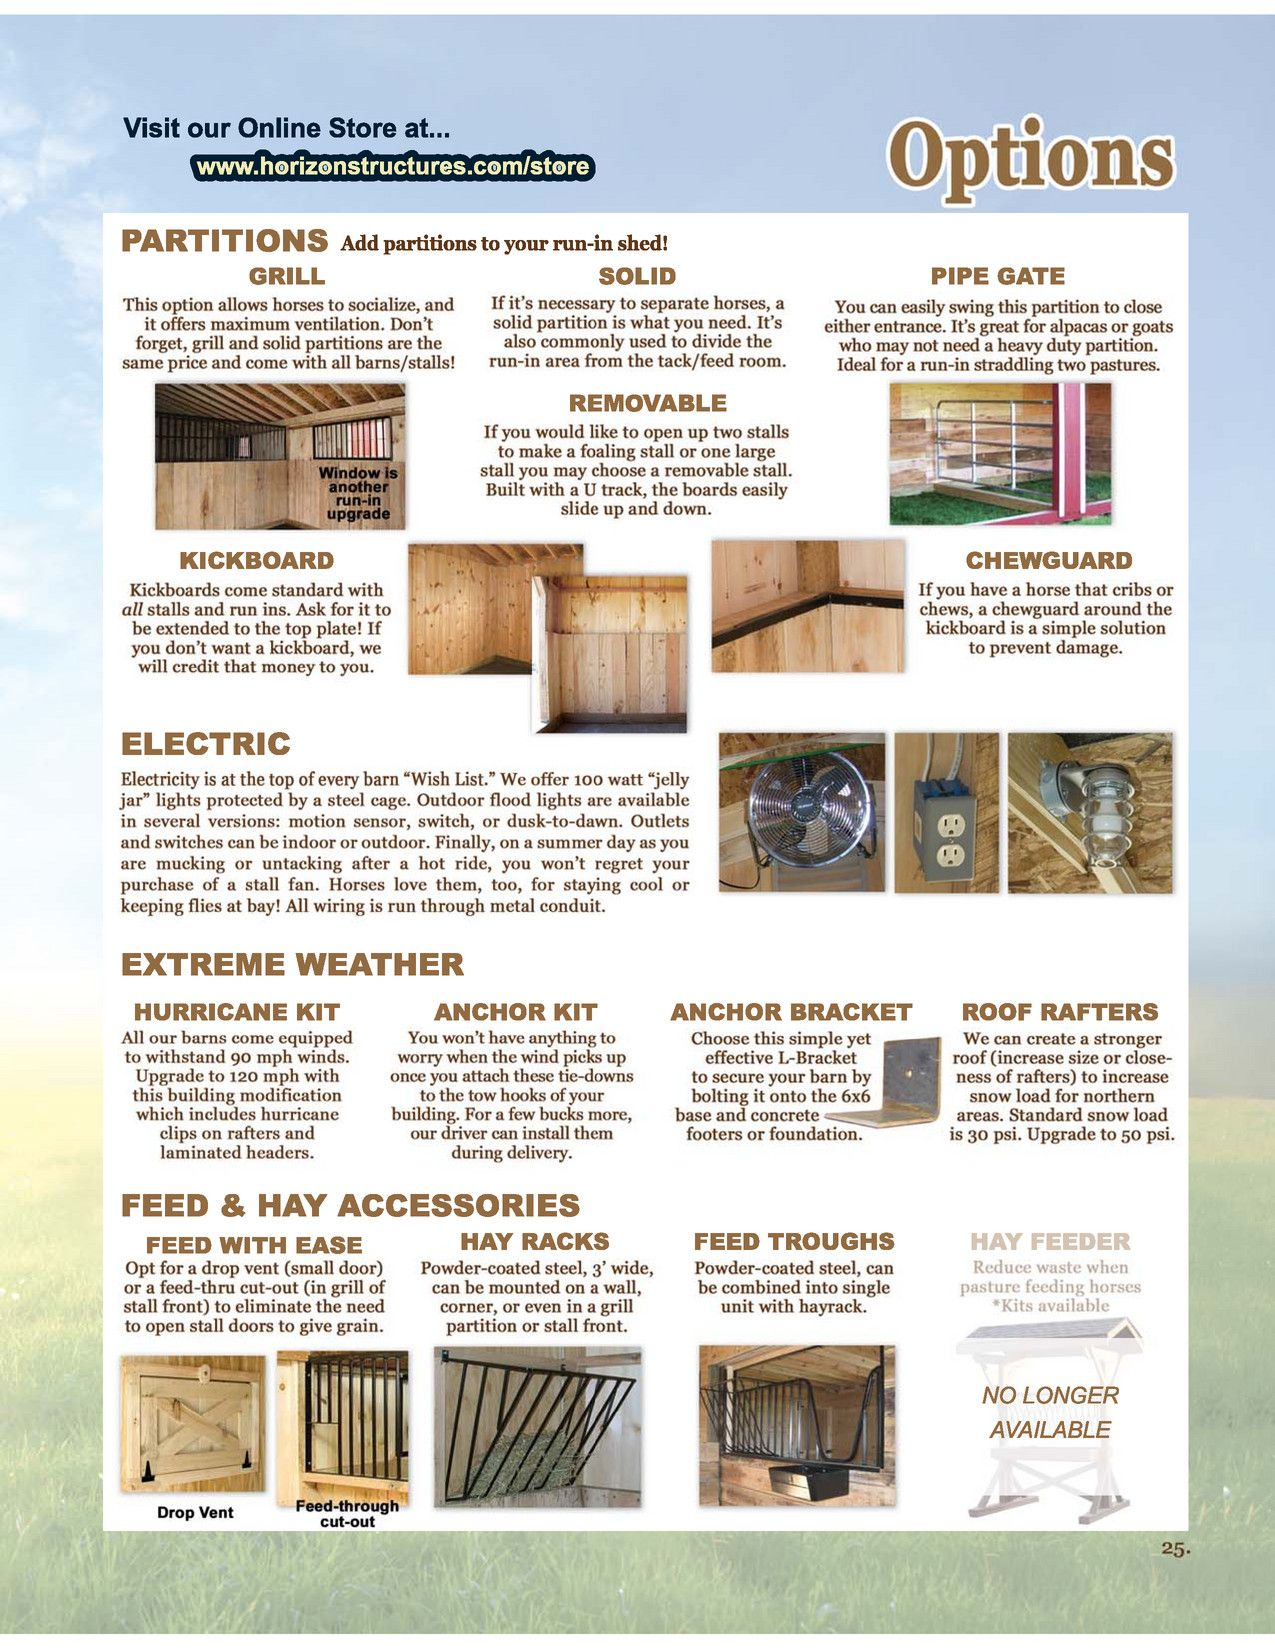 Horizon Structures The Perfect Barn Run In Shed Barn Structures